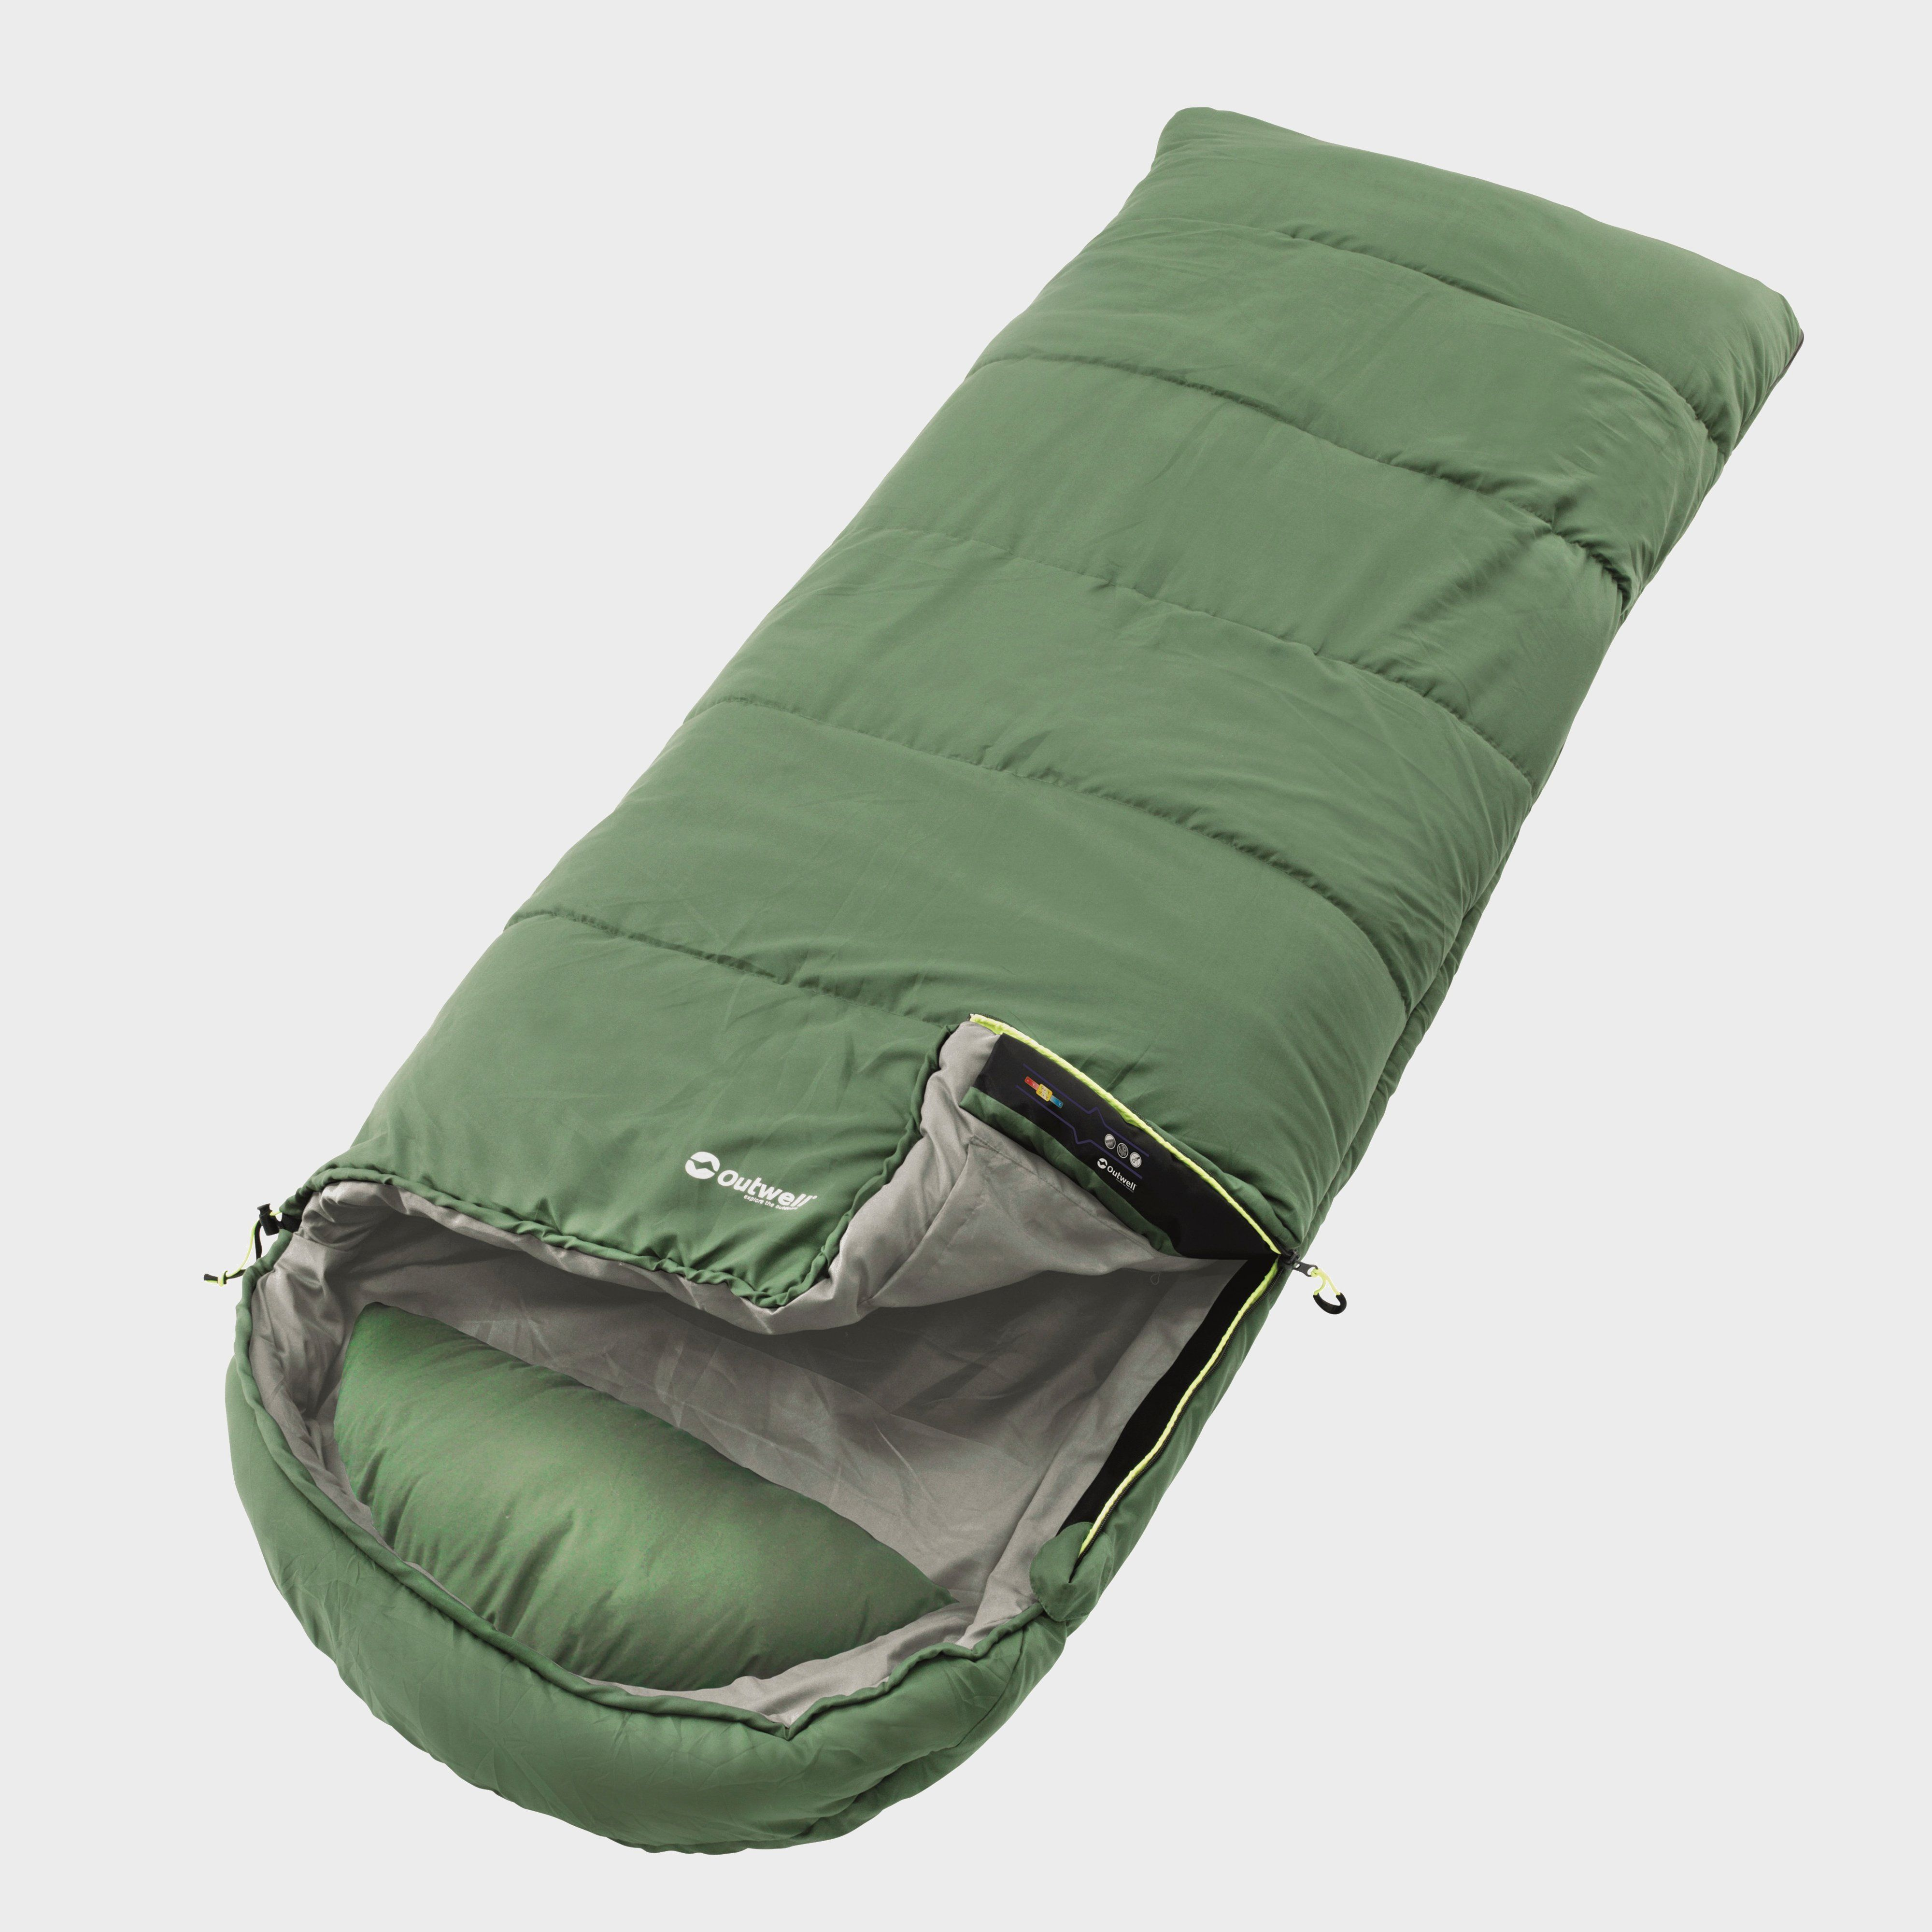 OUTWELL Coram Lux Single Sleeping Bag